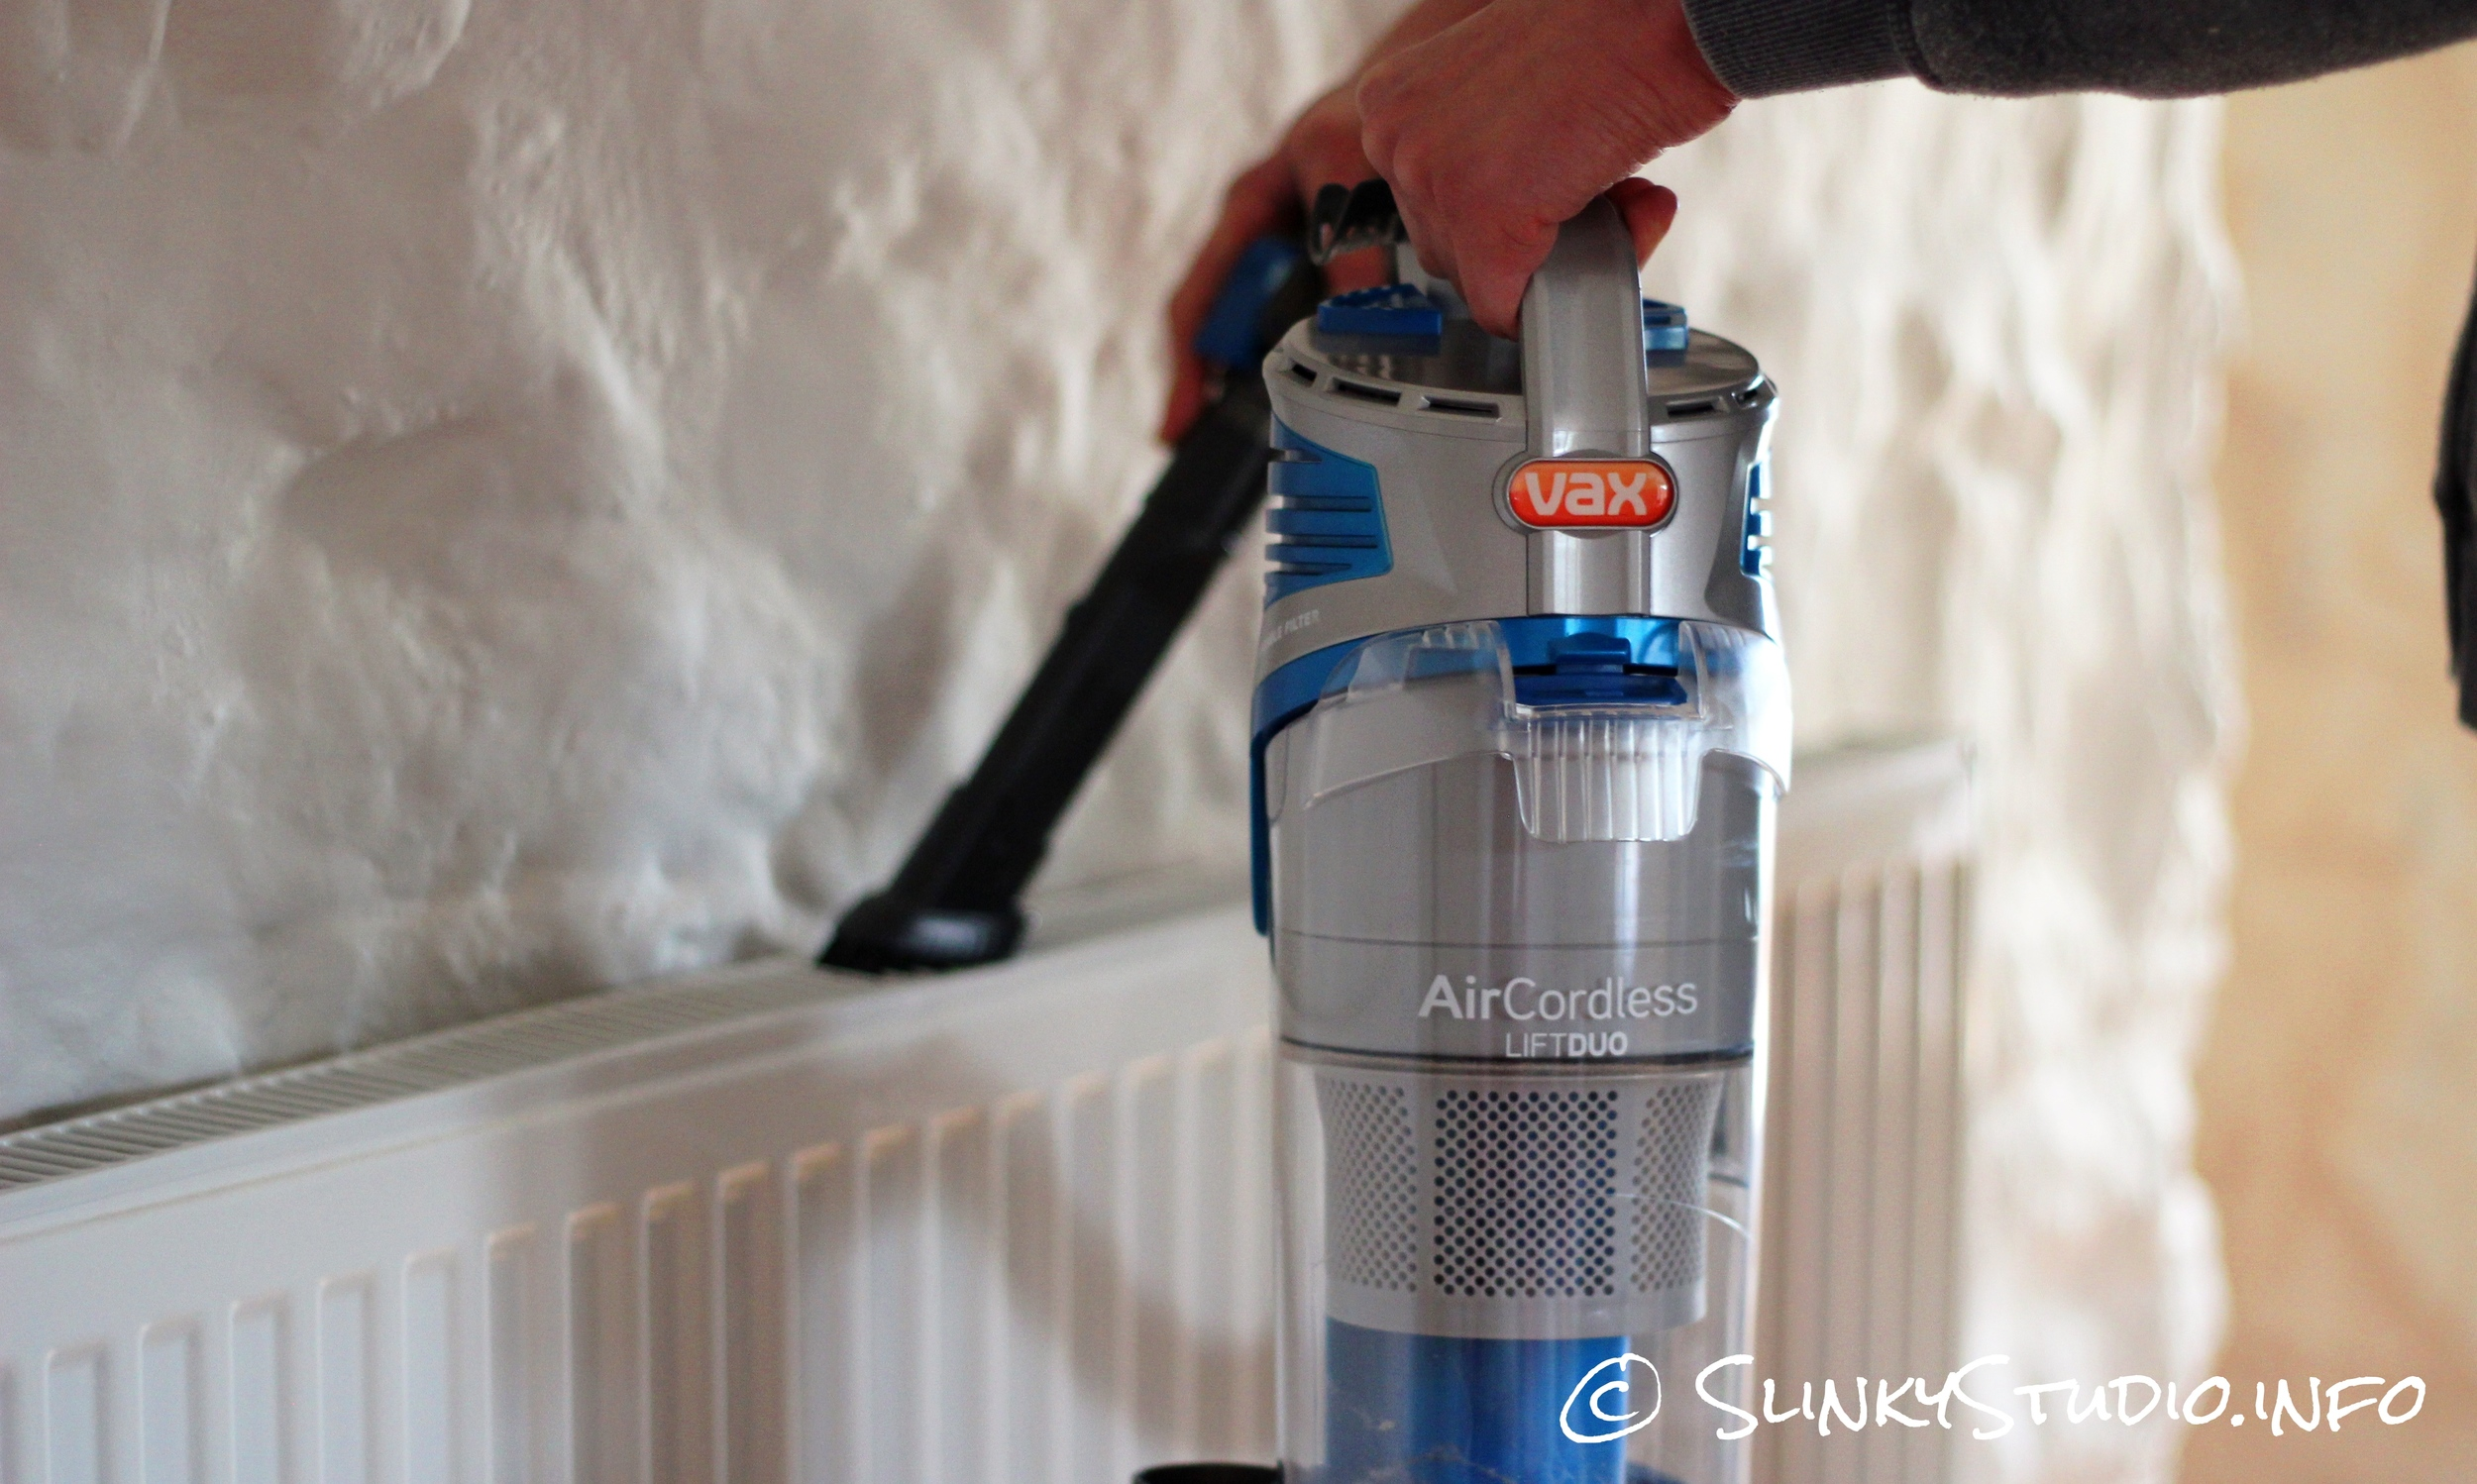 Vax Air Cordless Lift Holding Hose Cleaning.jpg